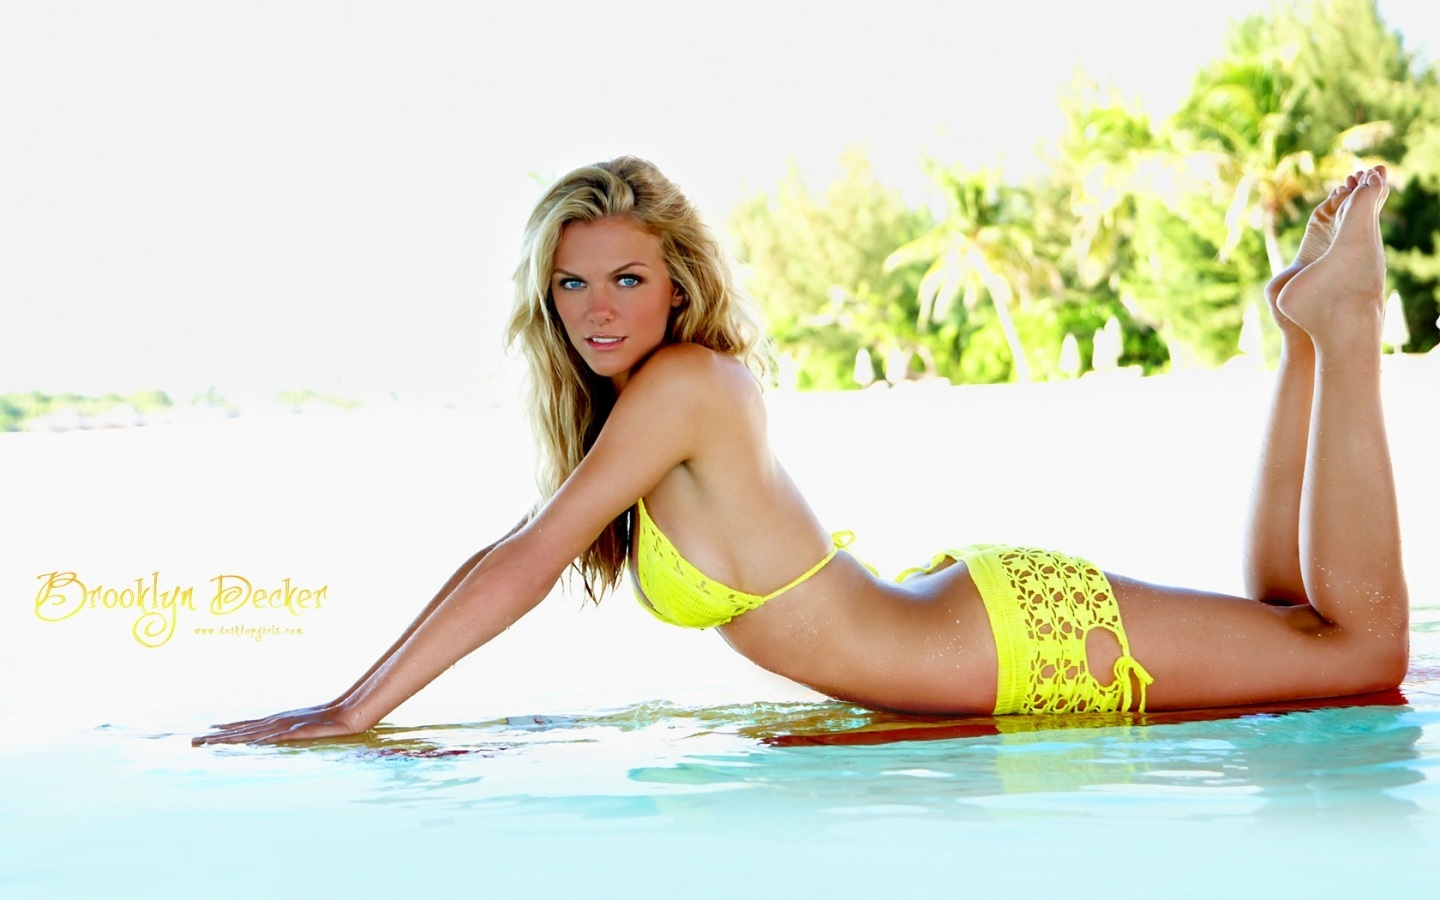 Models Brooklyn Decker Wallpaper